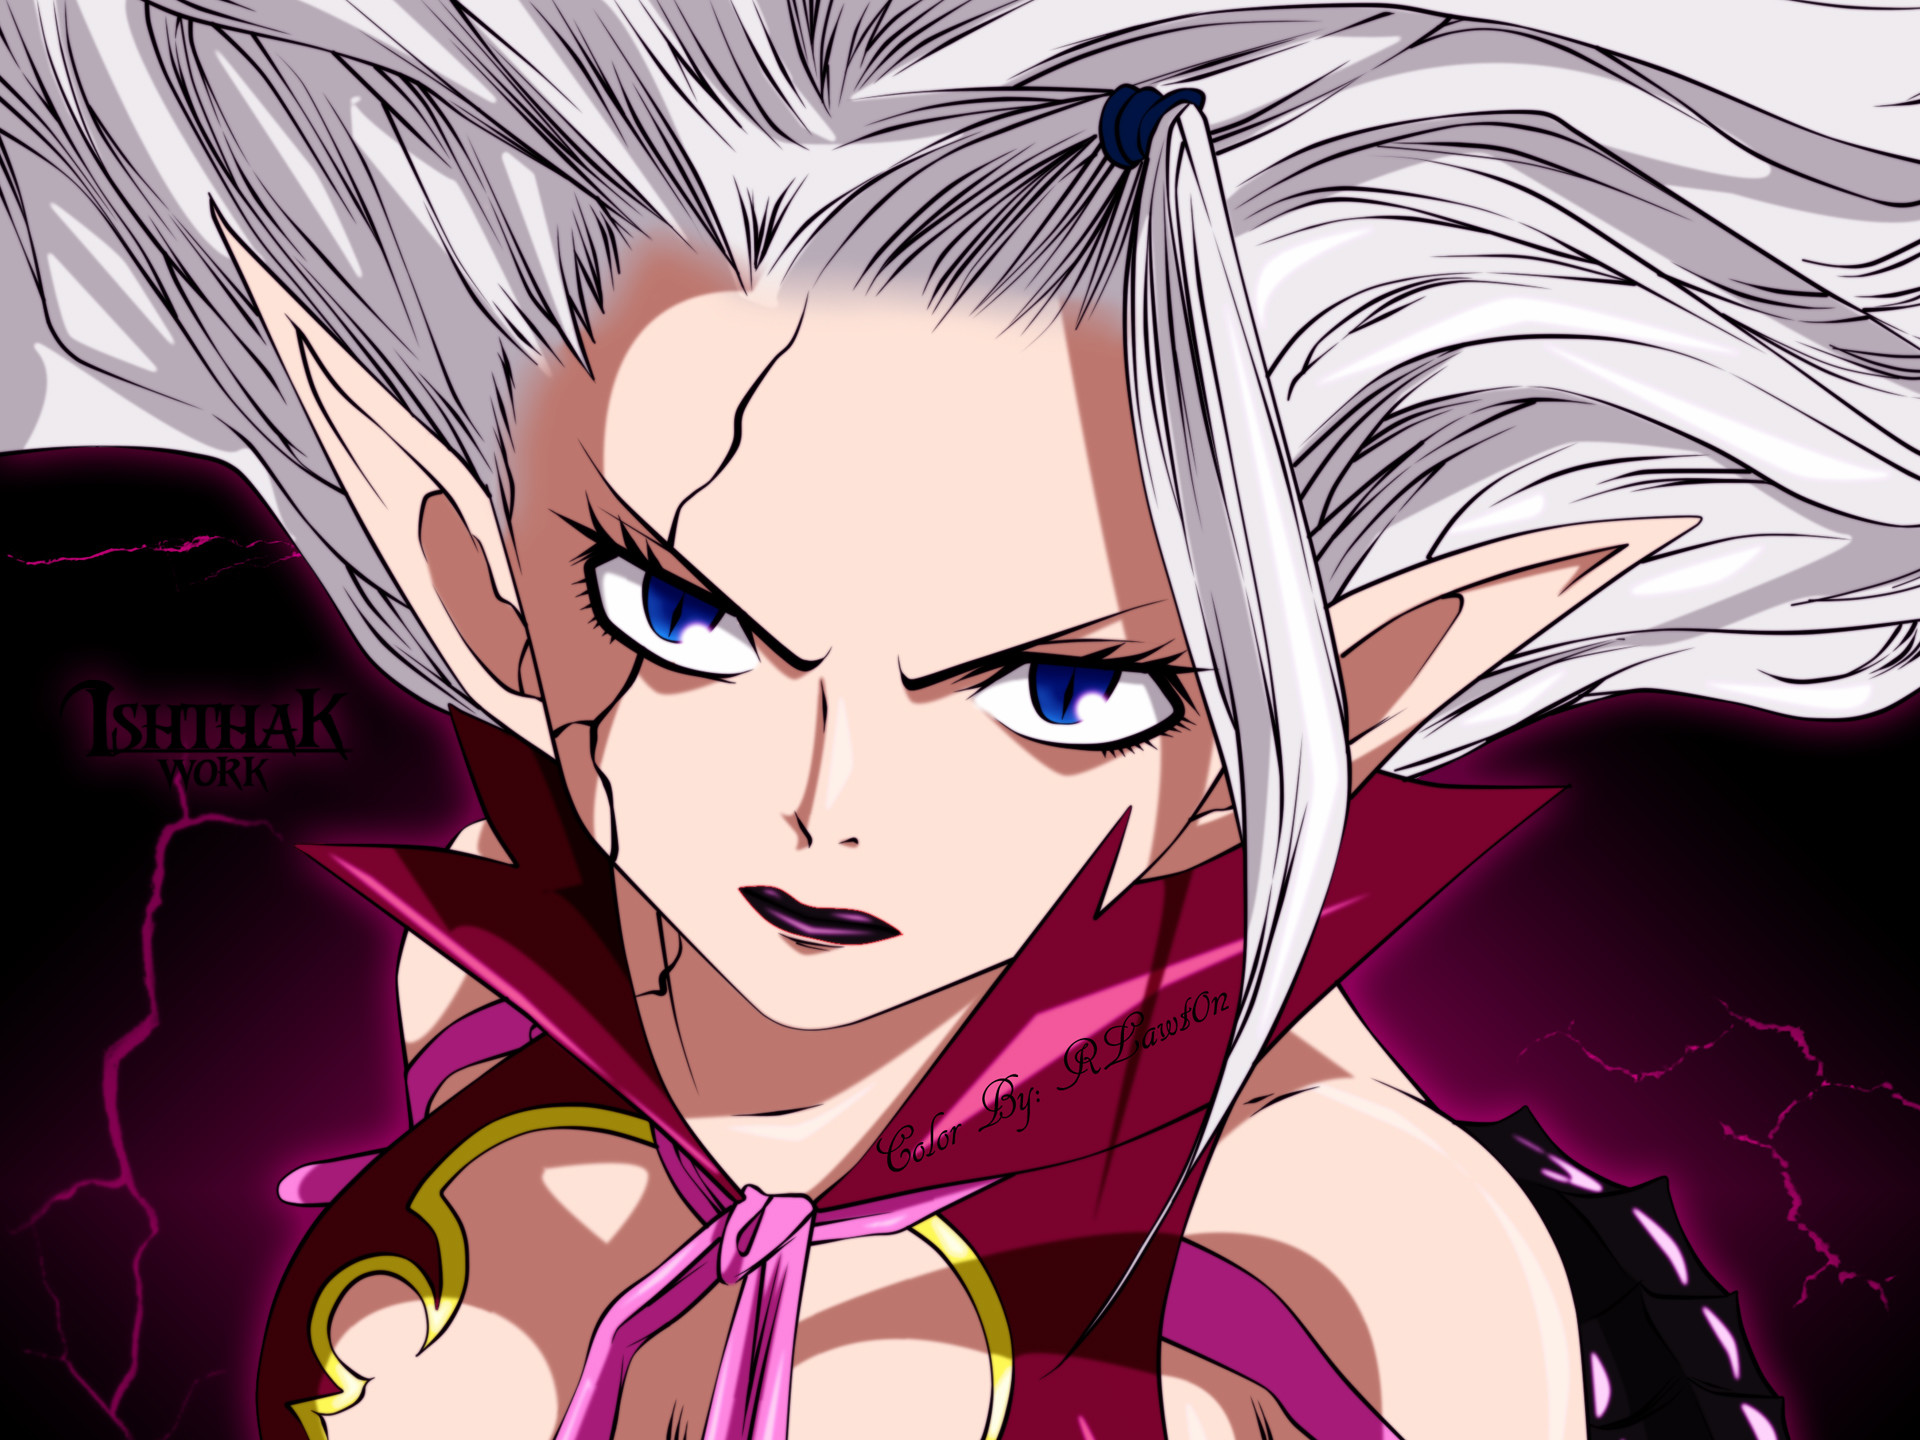 Mirajane Wallpaper Fairy Tail – Tons of awesome fairy tail wallpapers hd to download for free.